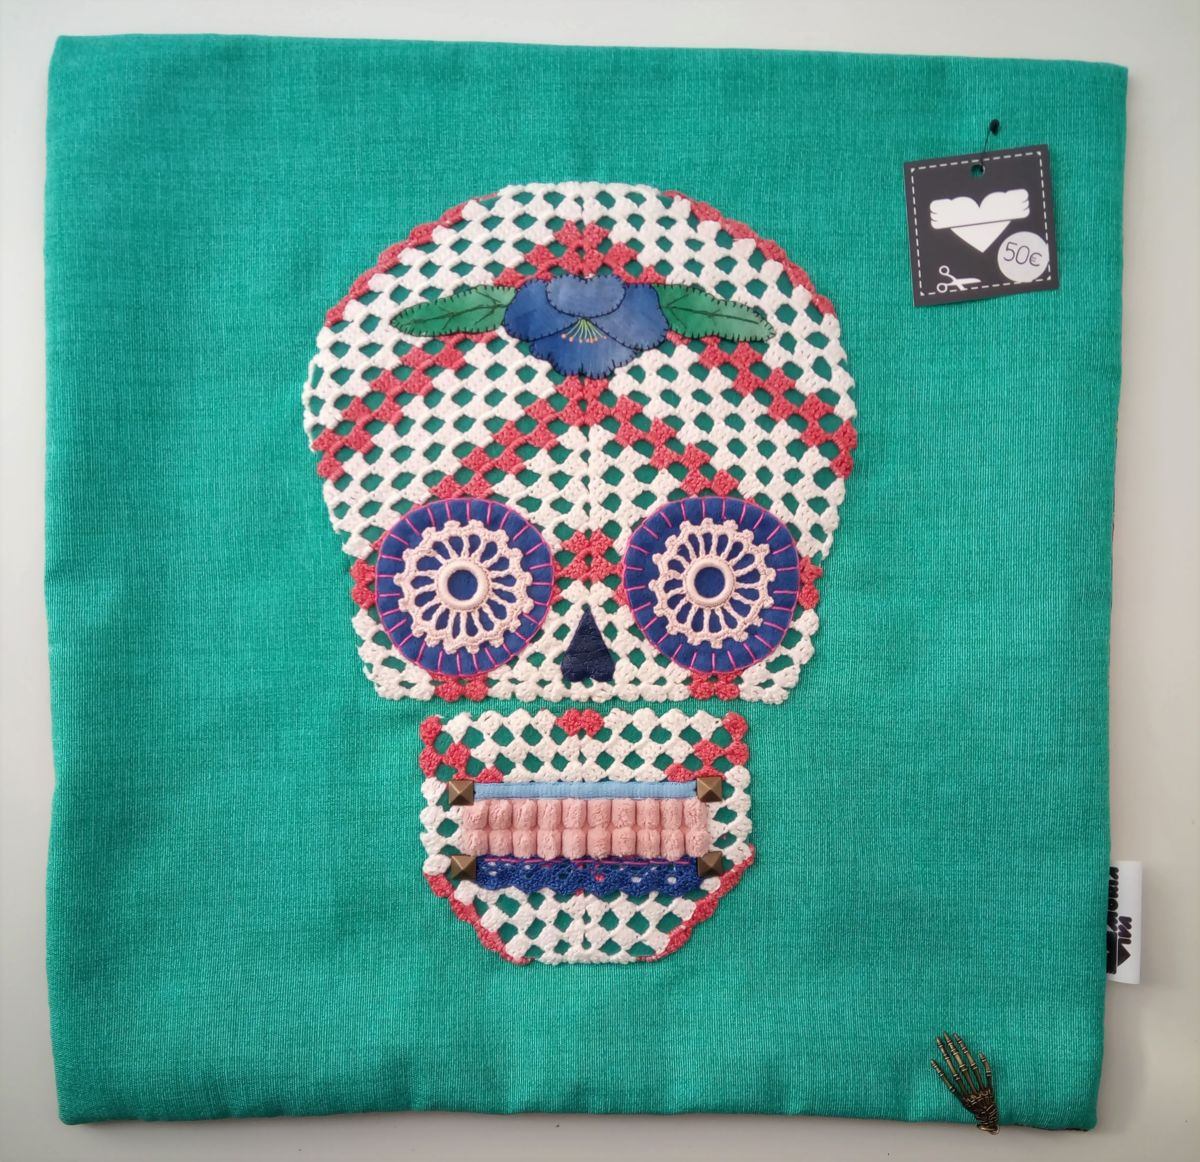 Unique Handstiched Mexican Skull Pillow Case - Mixed Media ©2018 by Memória Viva -            memoria viva, textile art, fiber art, day of the dead, crochet, embroidery, doilie